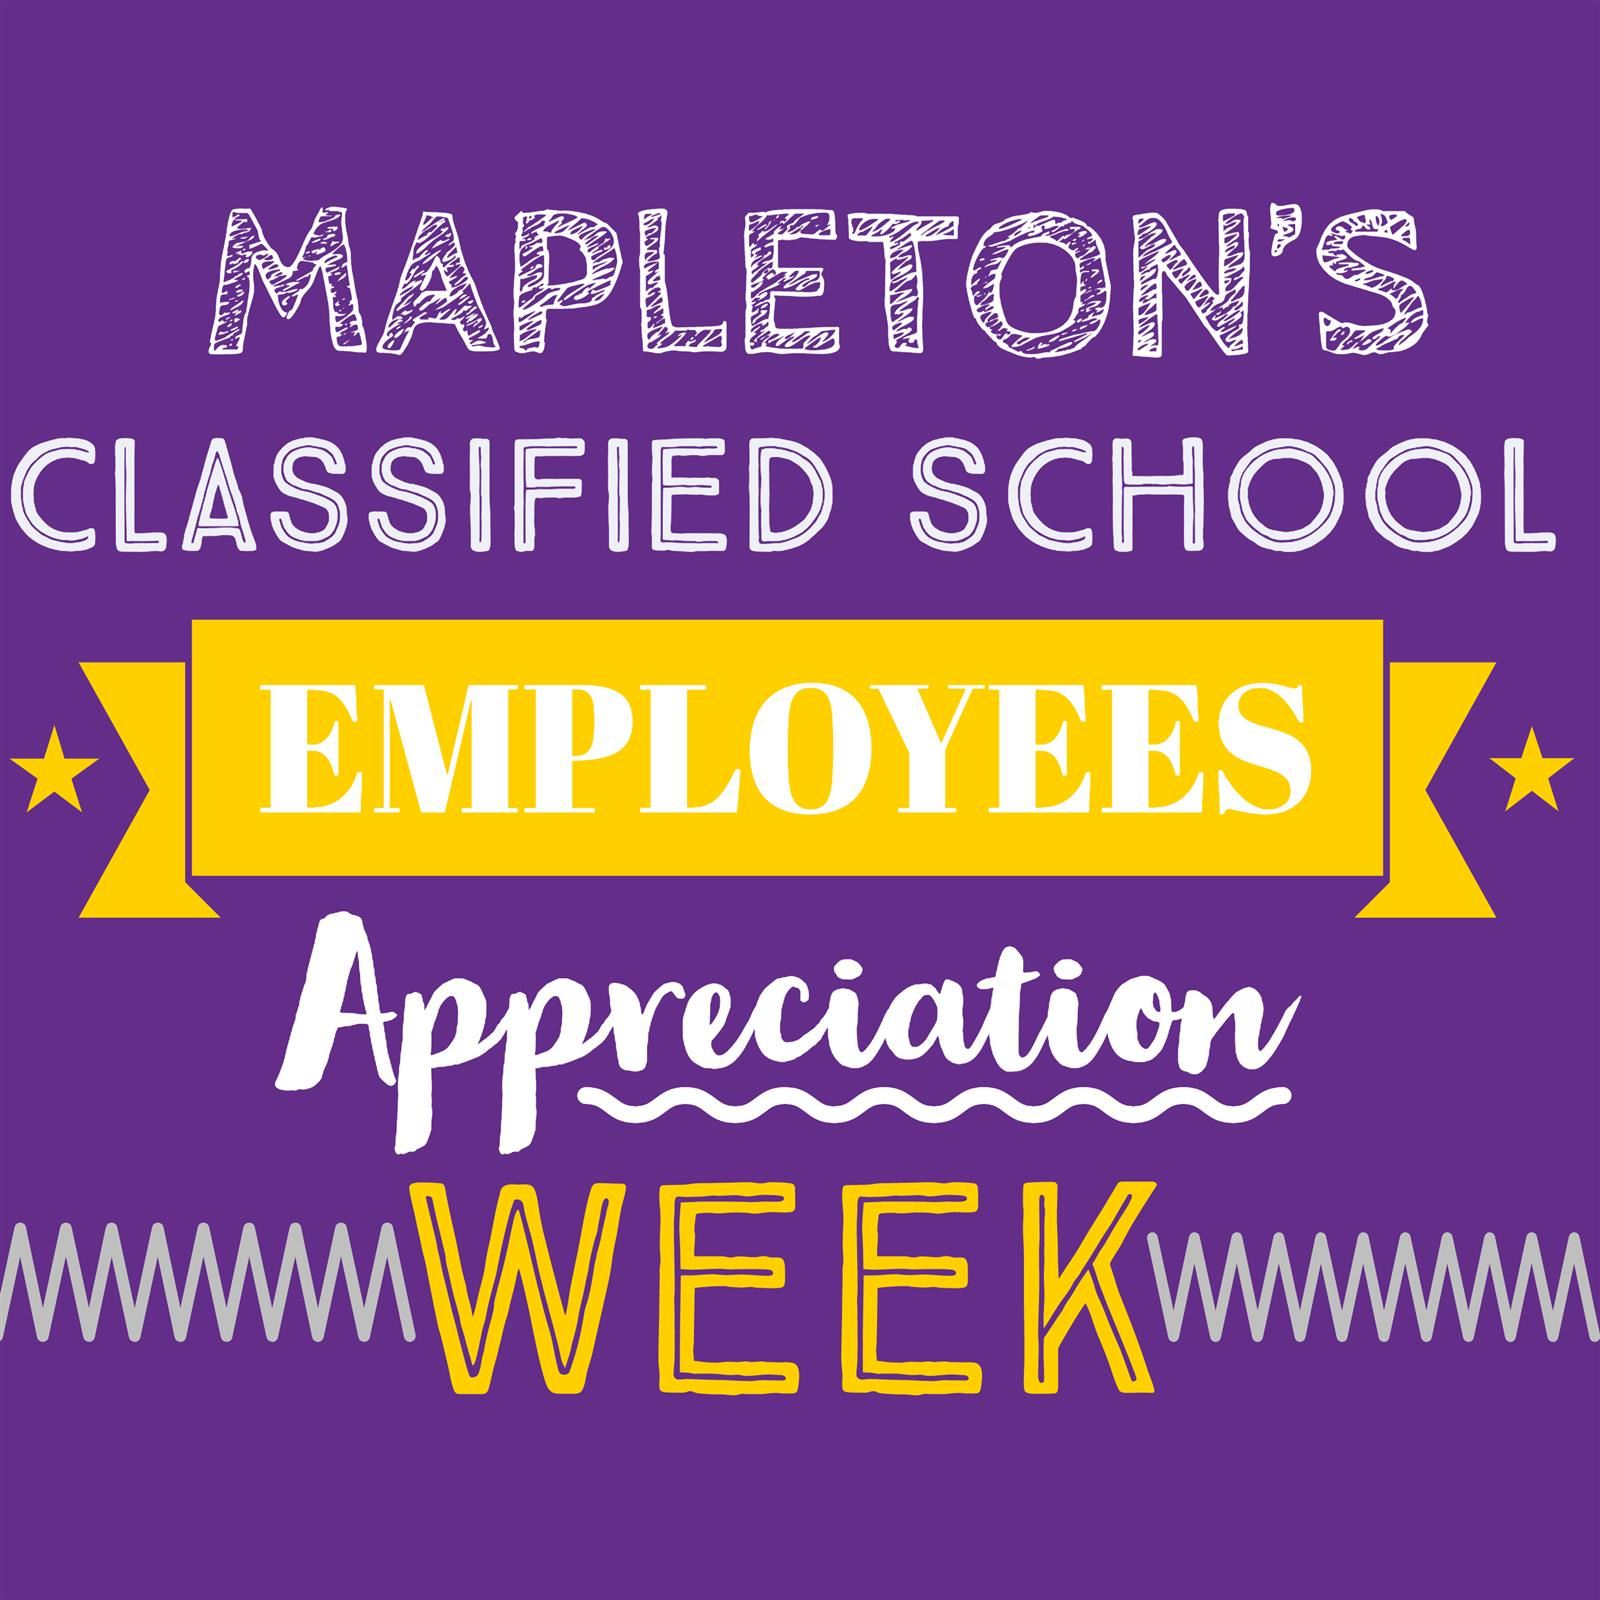 Classified School Employee Week graphic